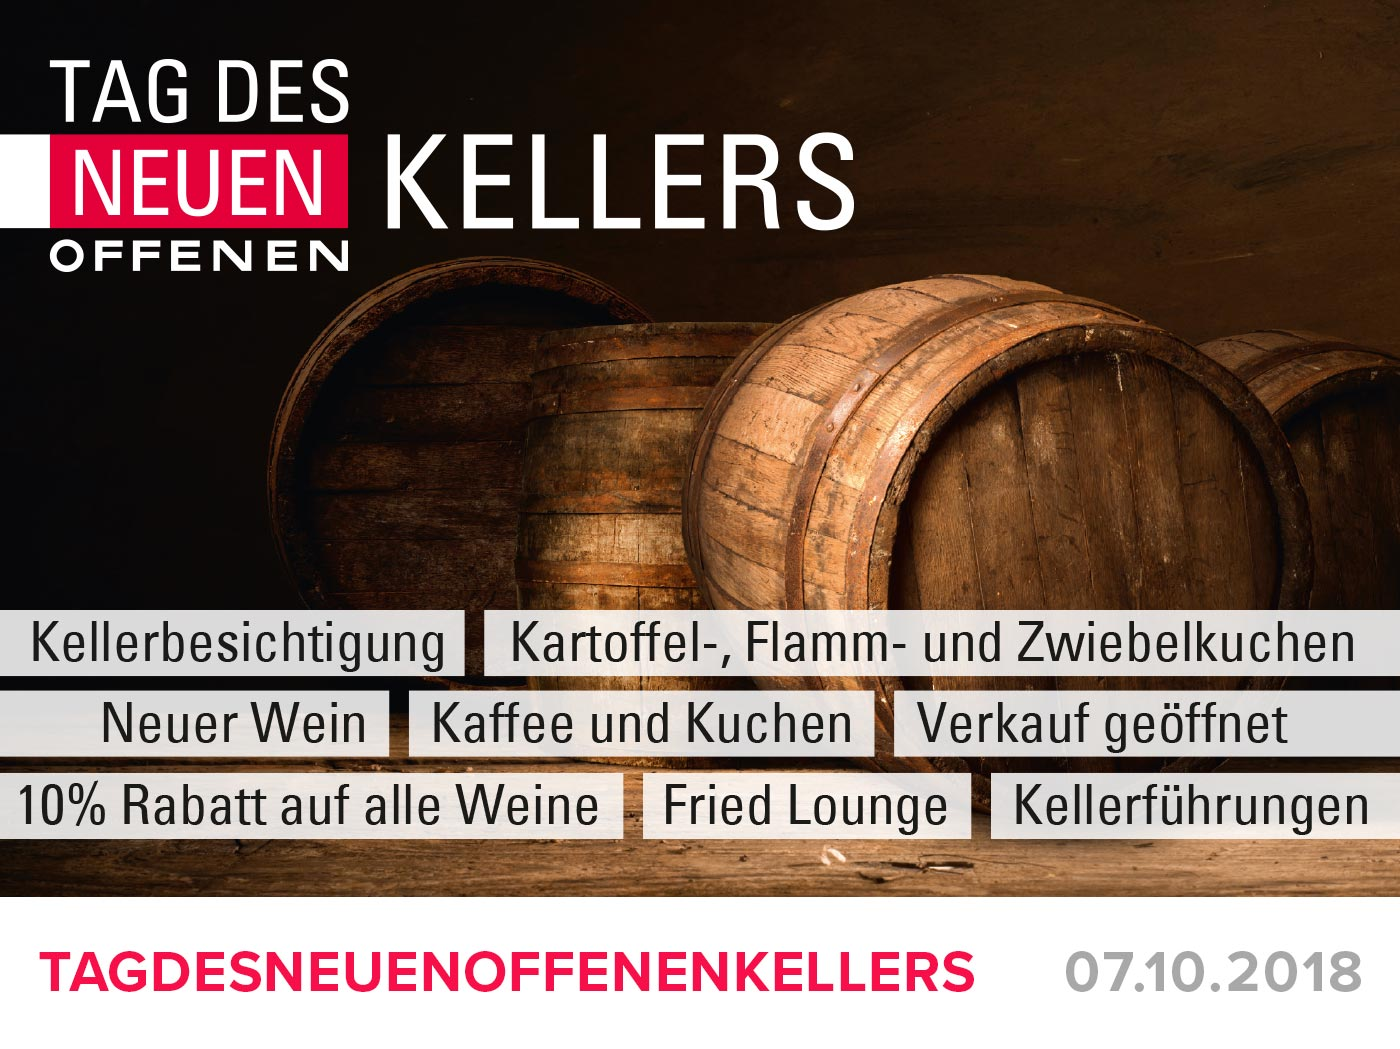 """Featured image for """"Tag des neuen offenen Kellers"""""""